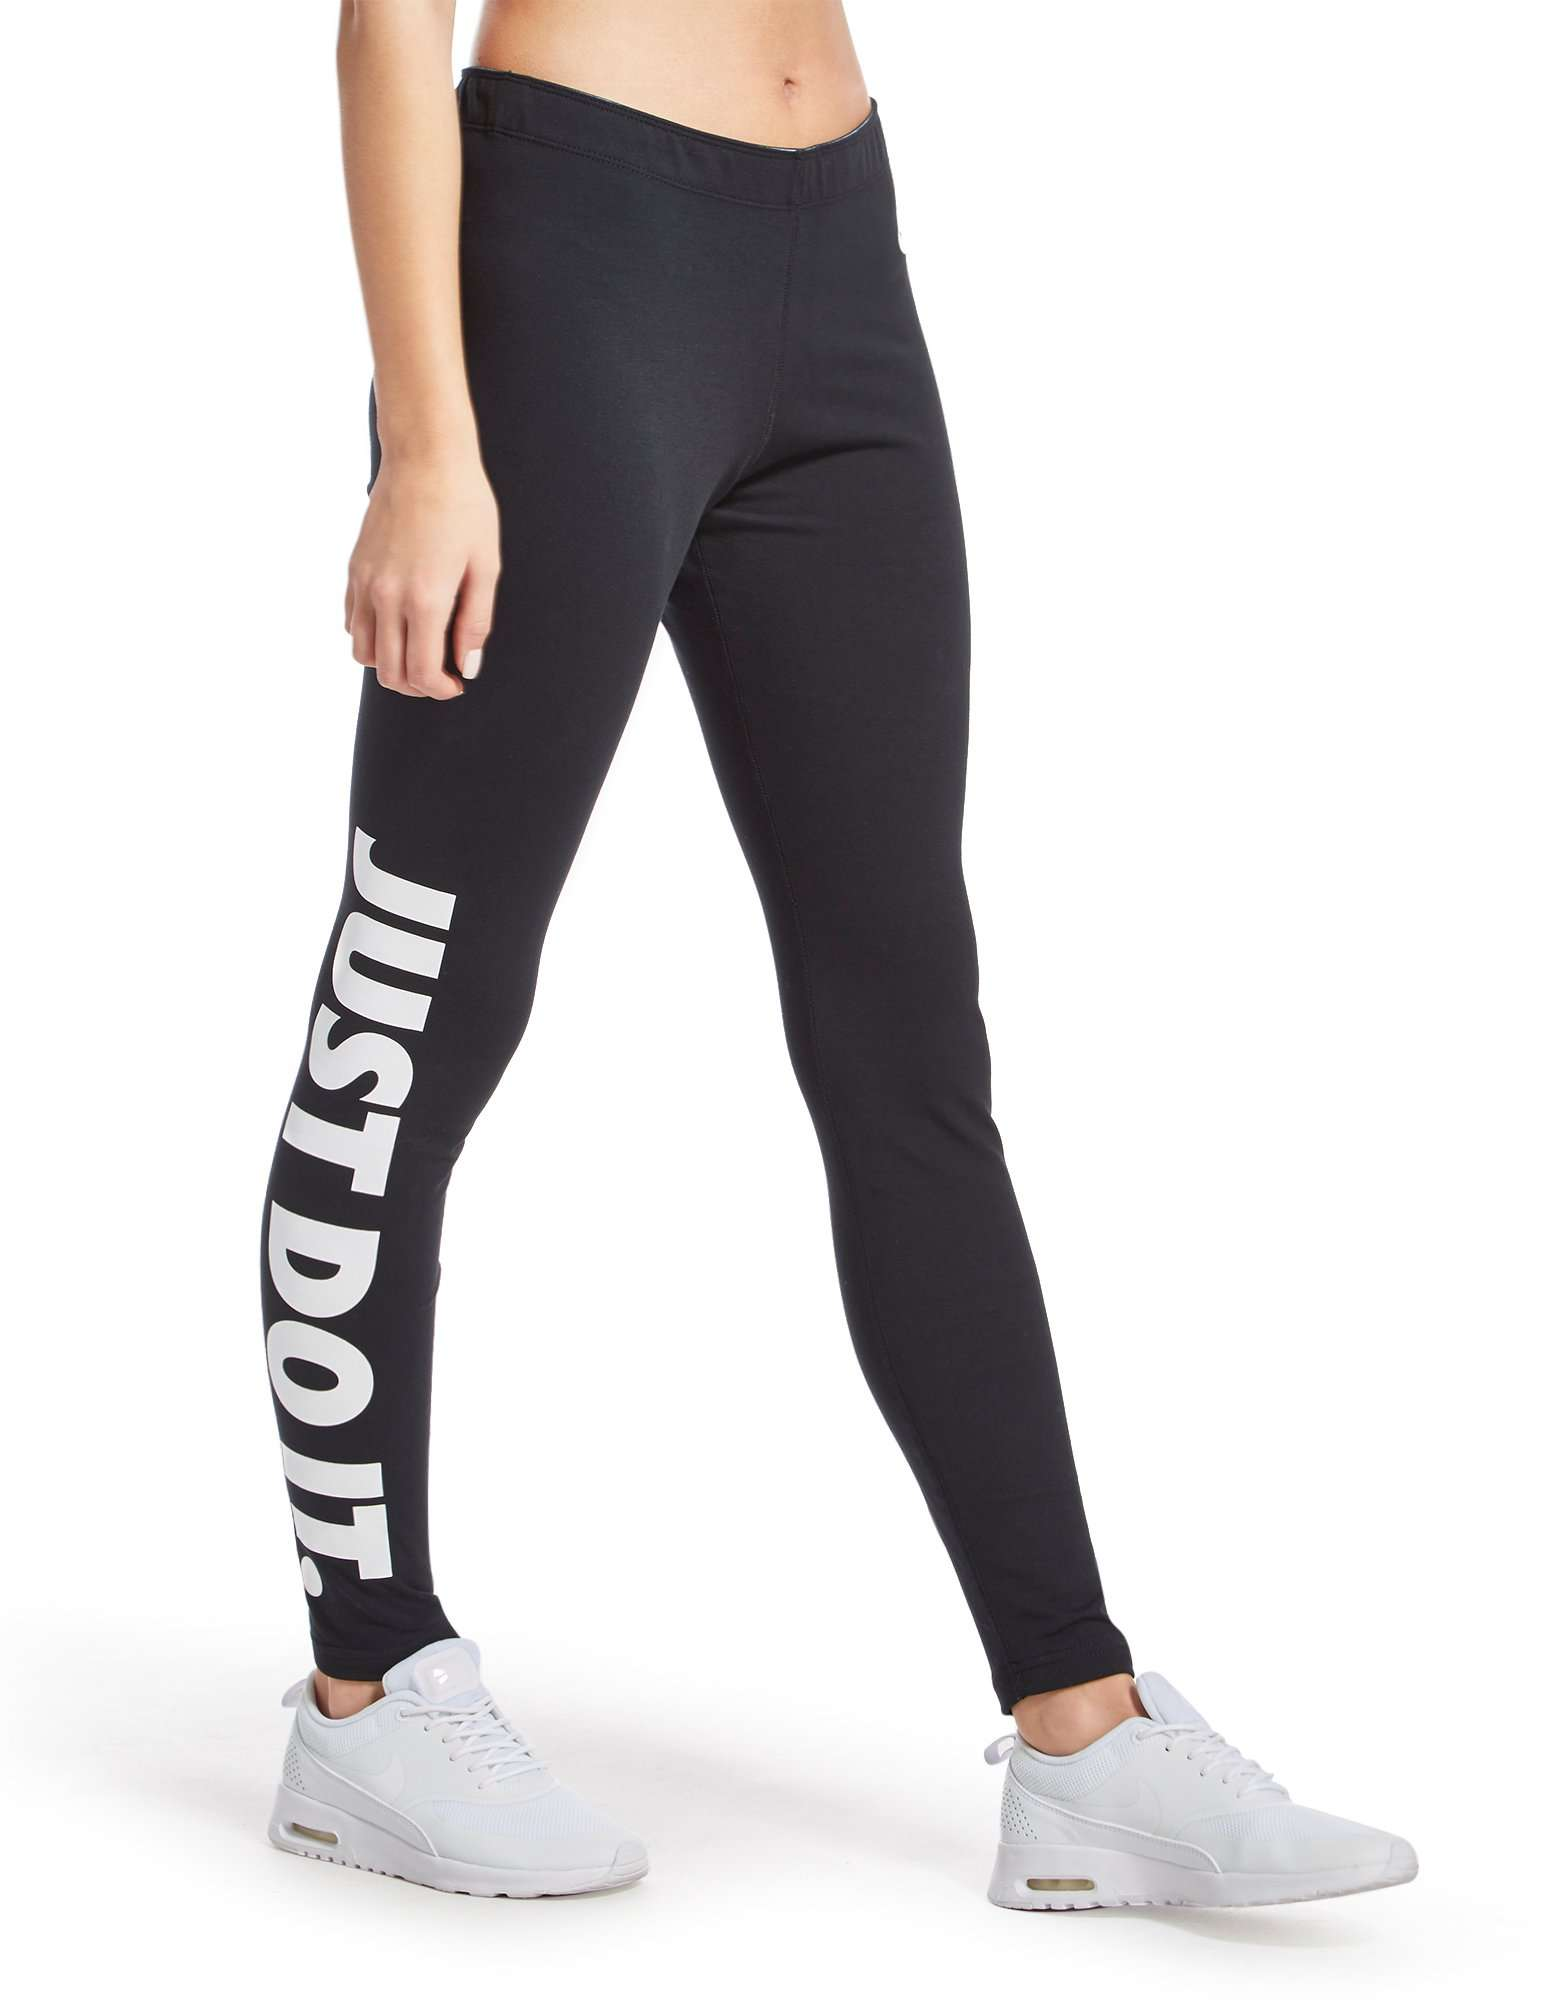 nike leg a see just do it leggings jd sports. Black Bedroom Furniture Sets. Home Design Ideas